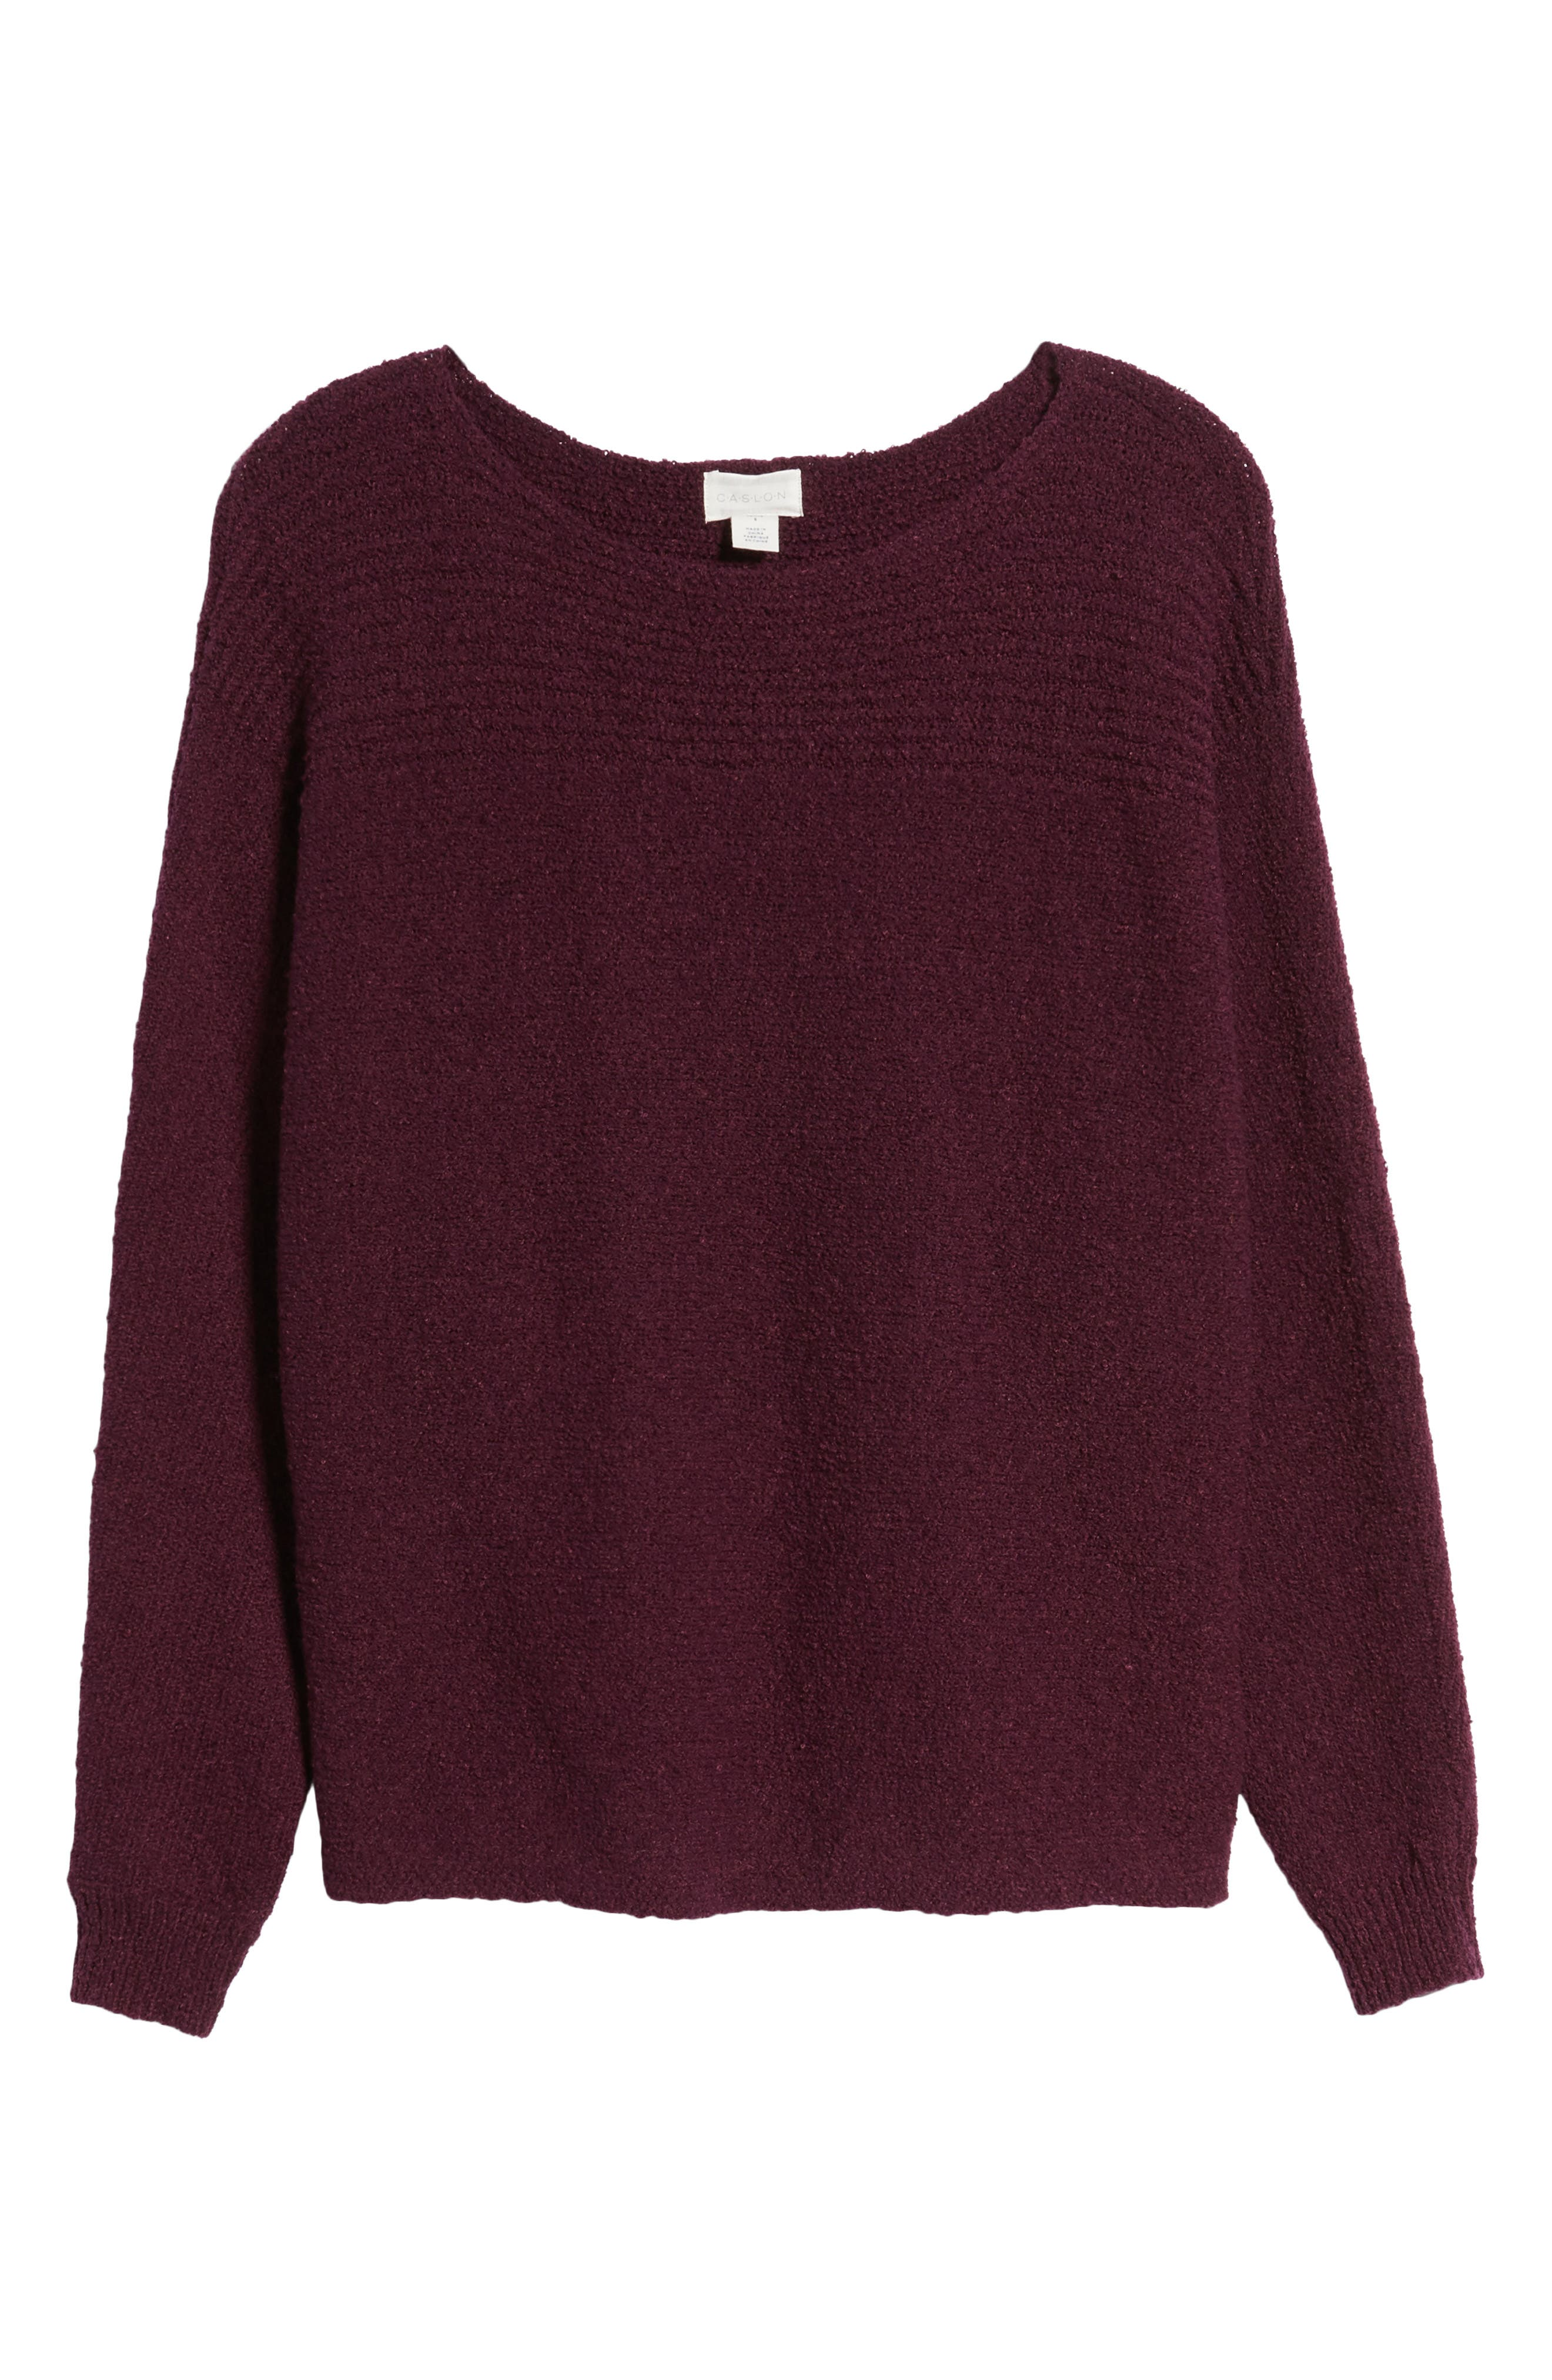 Calson<sup>®</sup> Dolman Sleeve Sweater,                             Alternate thumbnail 28, color,